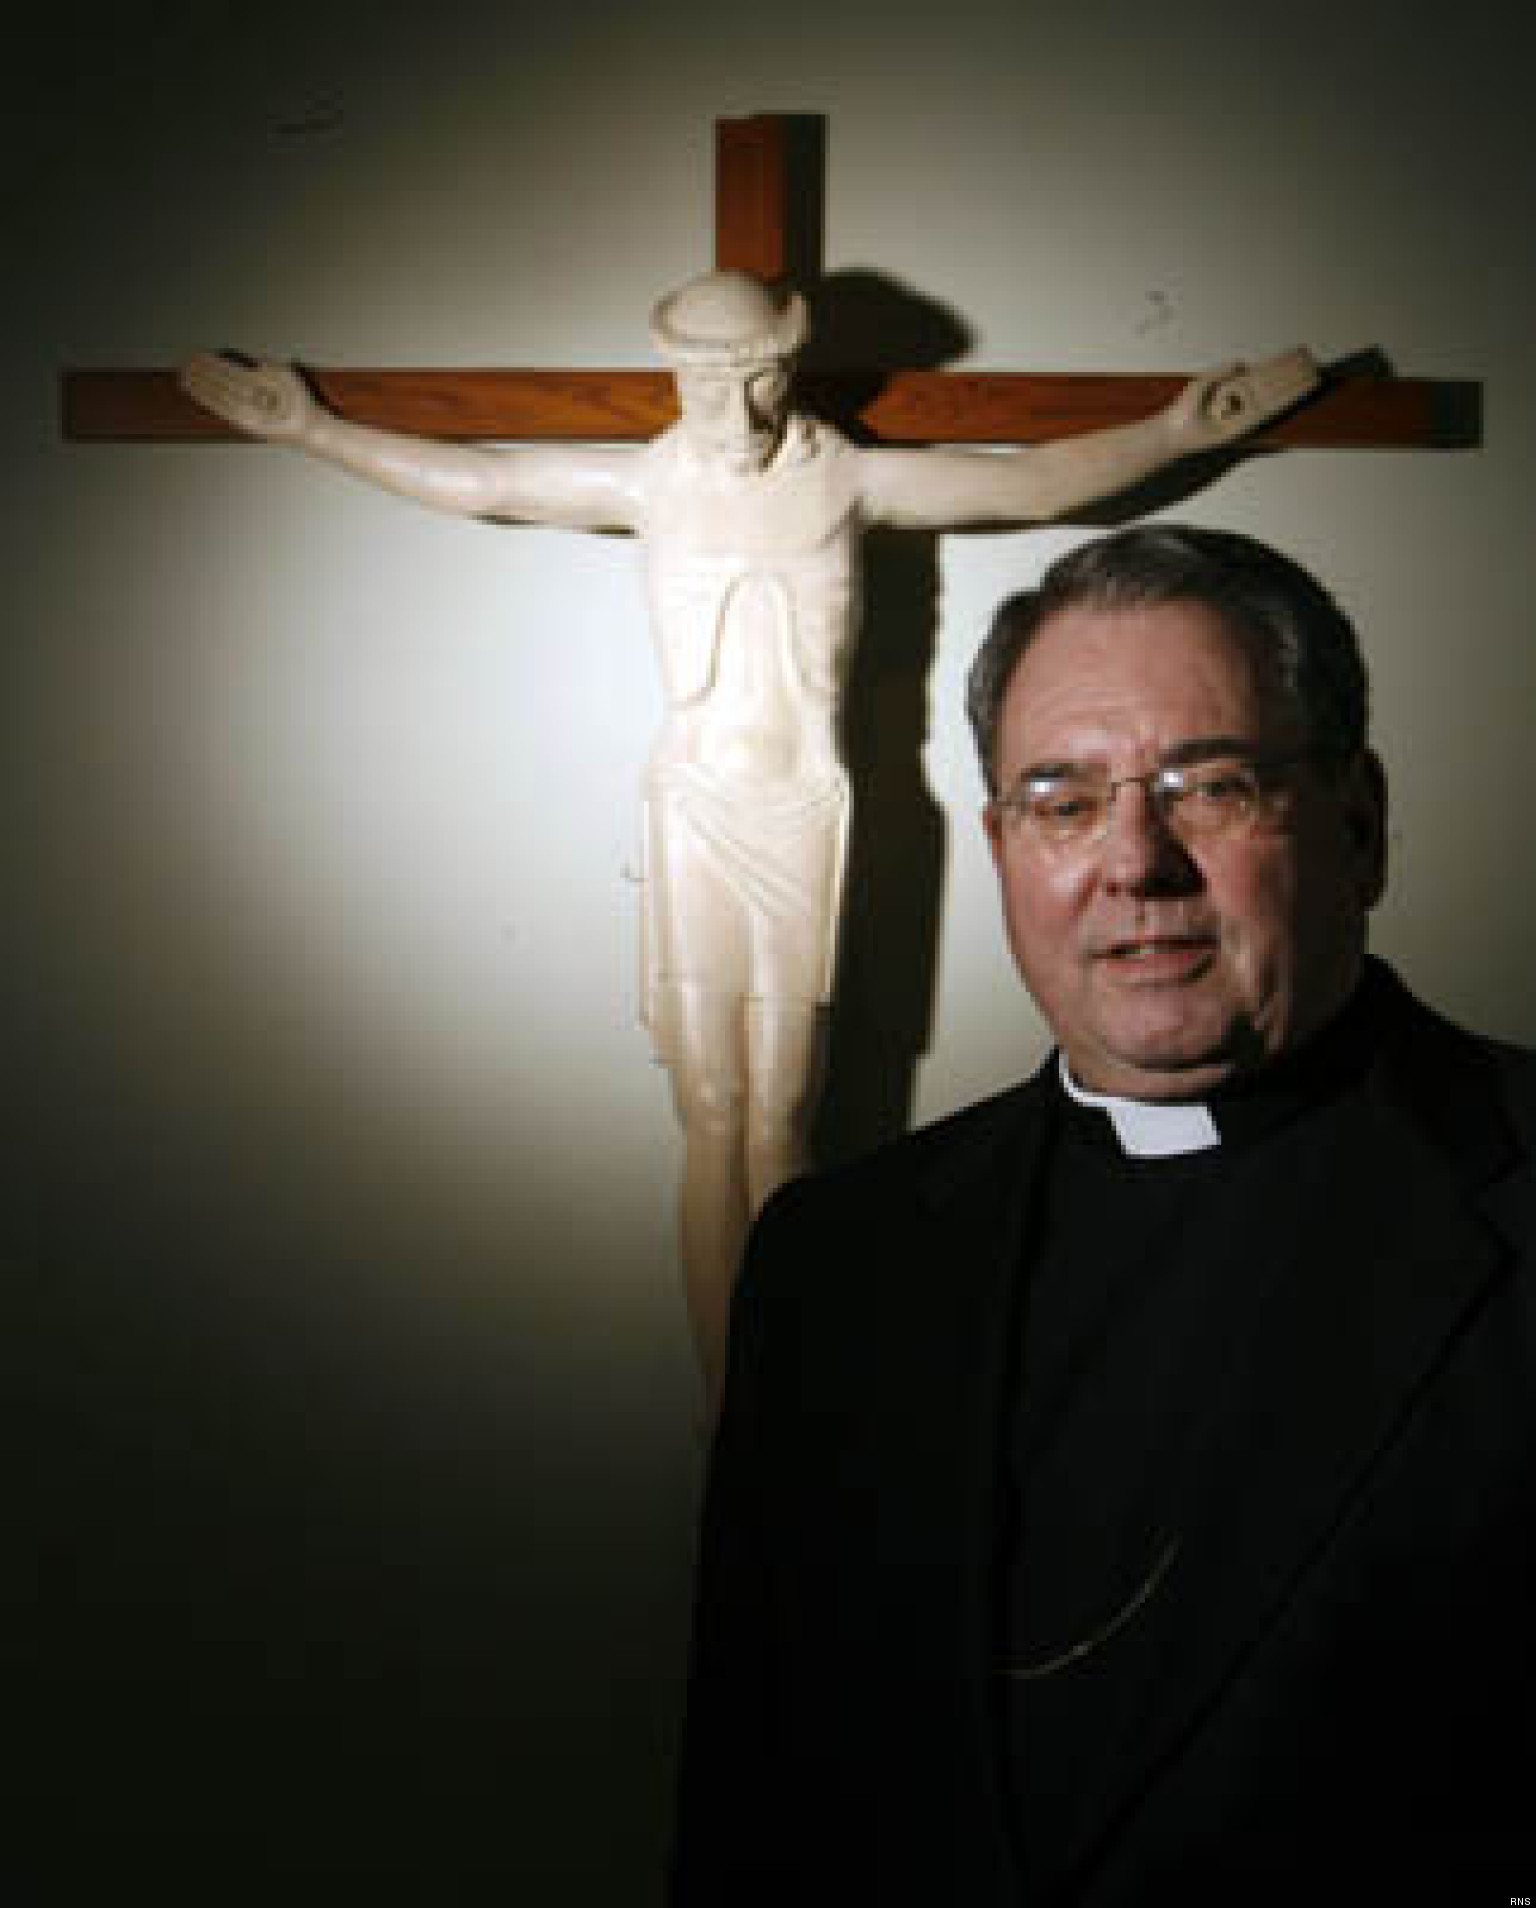 N.J. Catholics Outraged Over Archbishop's Defense Of Accused Priest's Access To Children